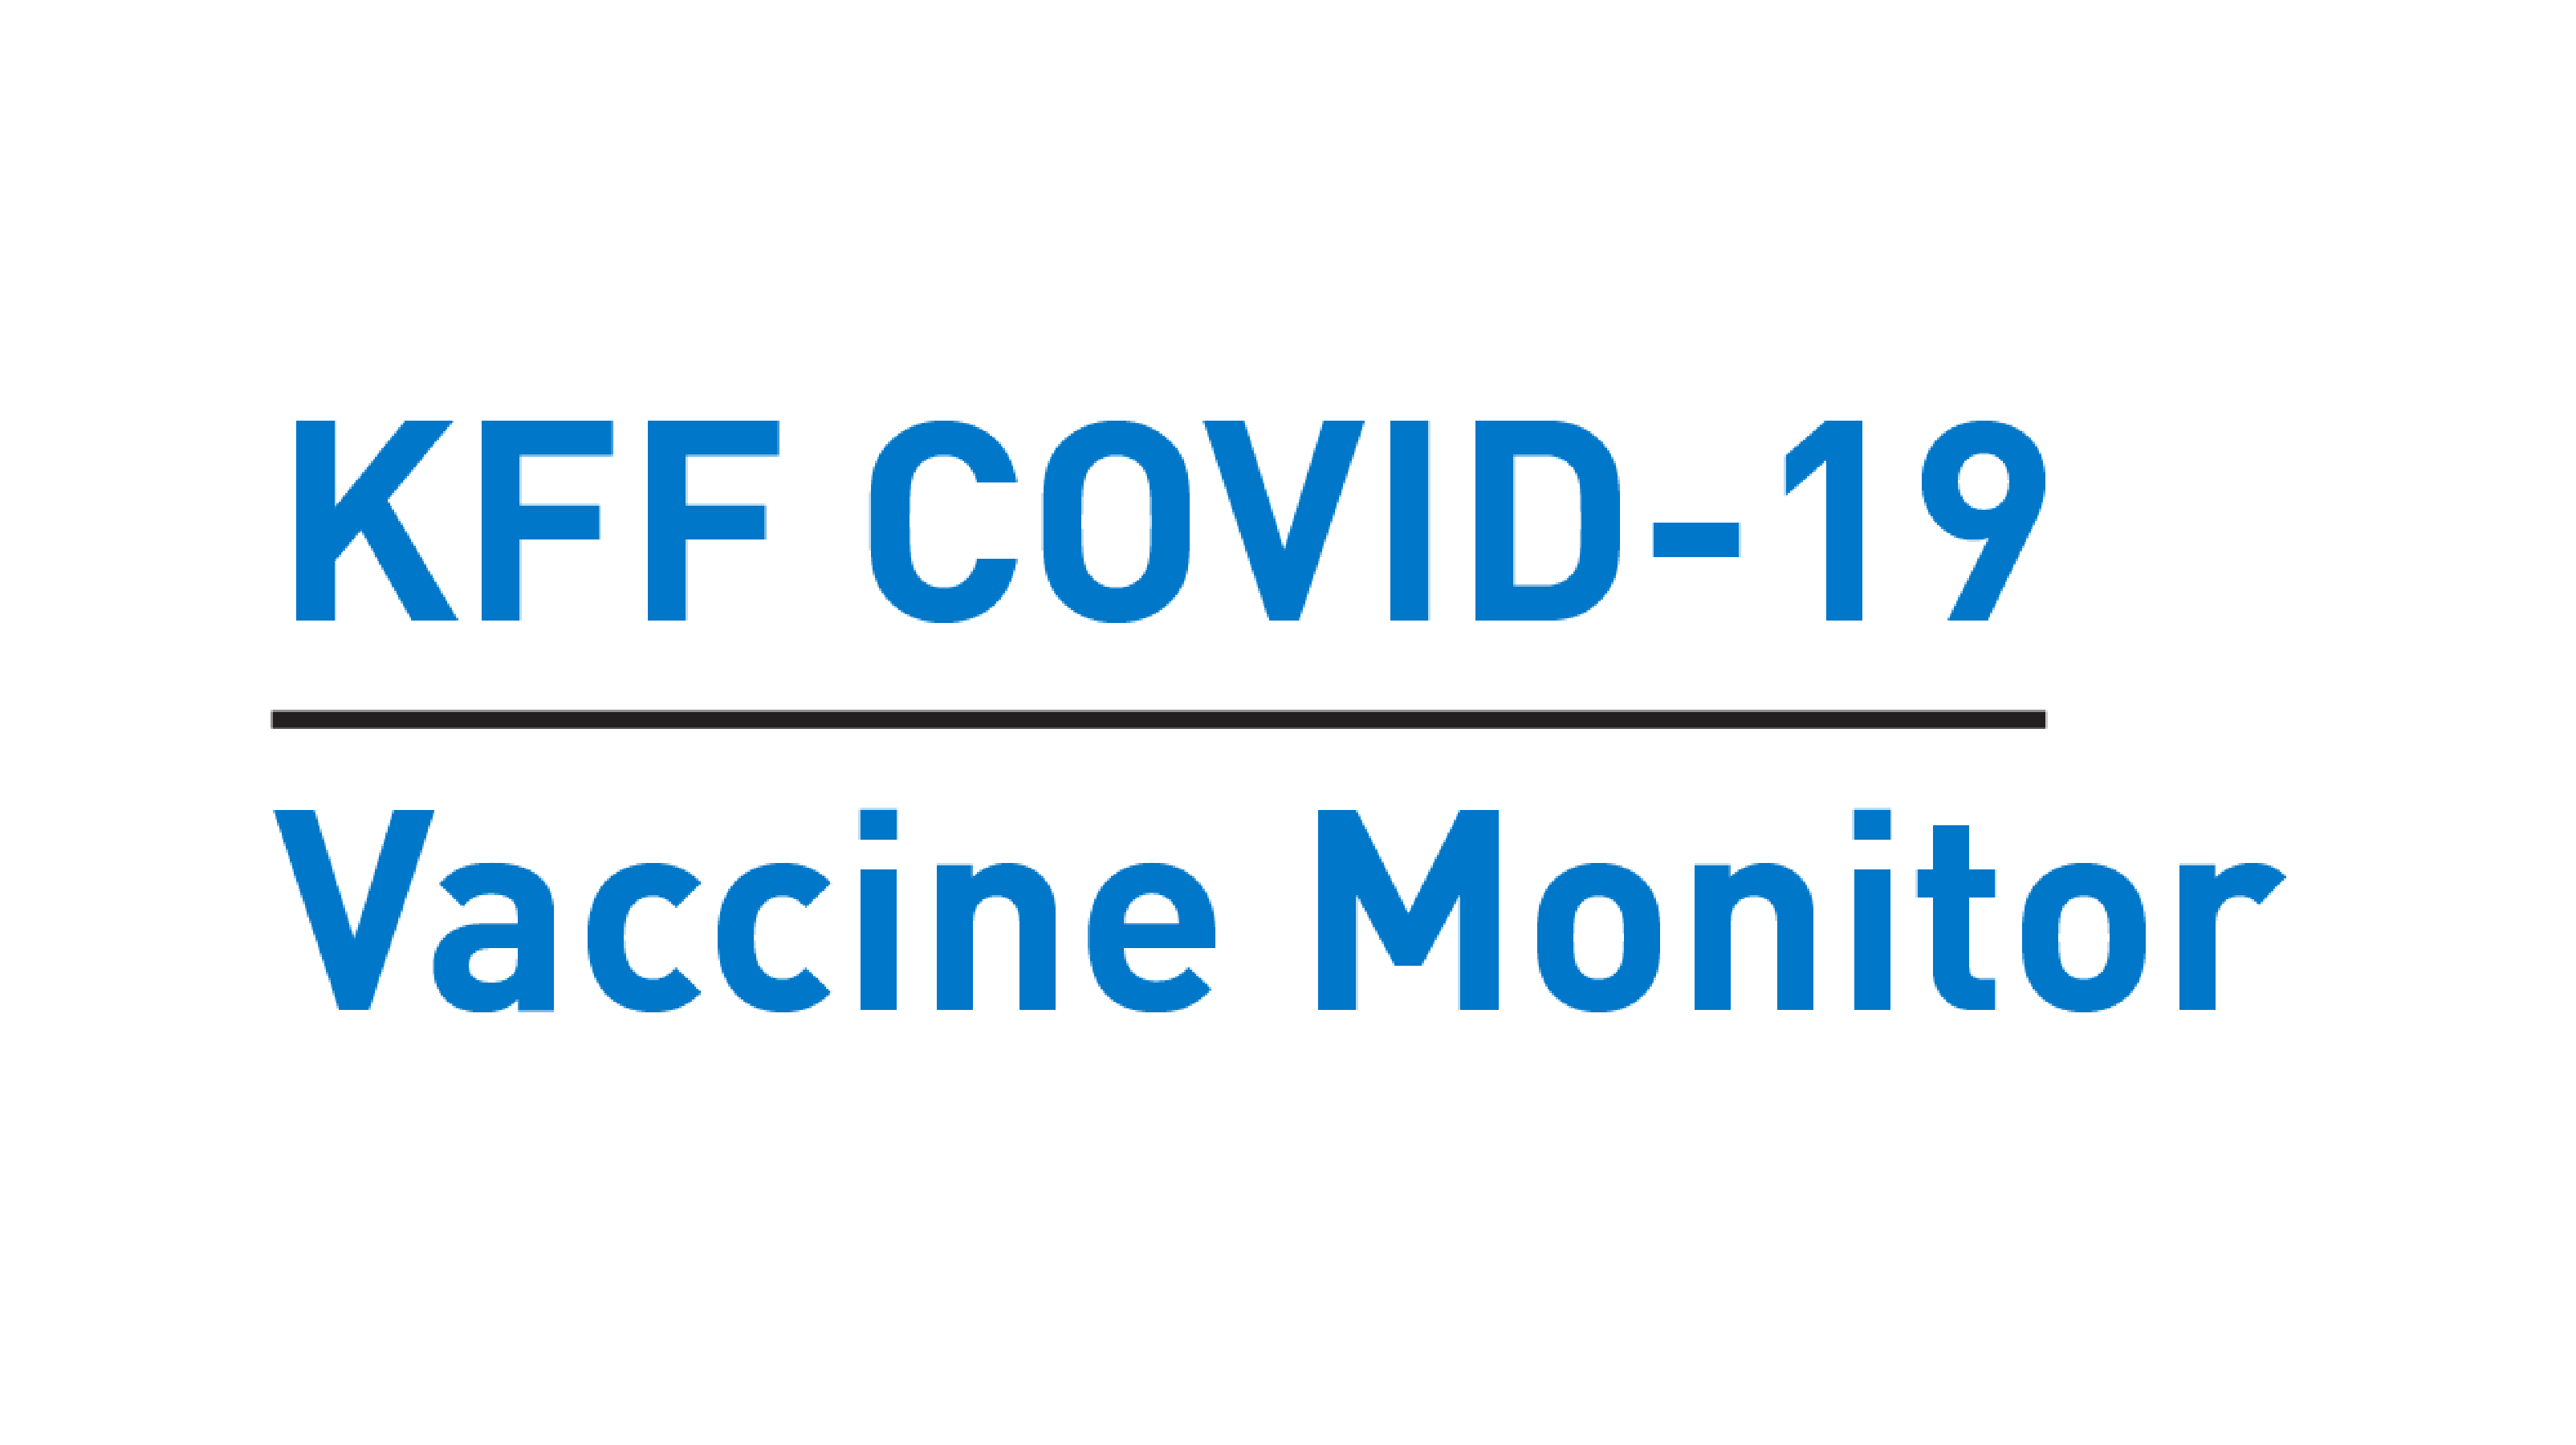 KFF COVID-19 Vaccine Monitor Archives